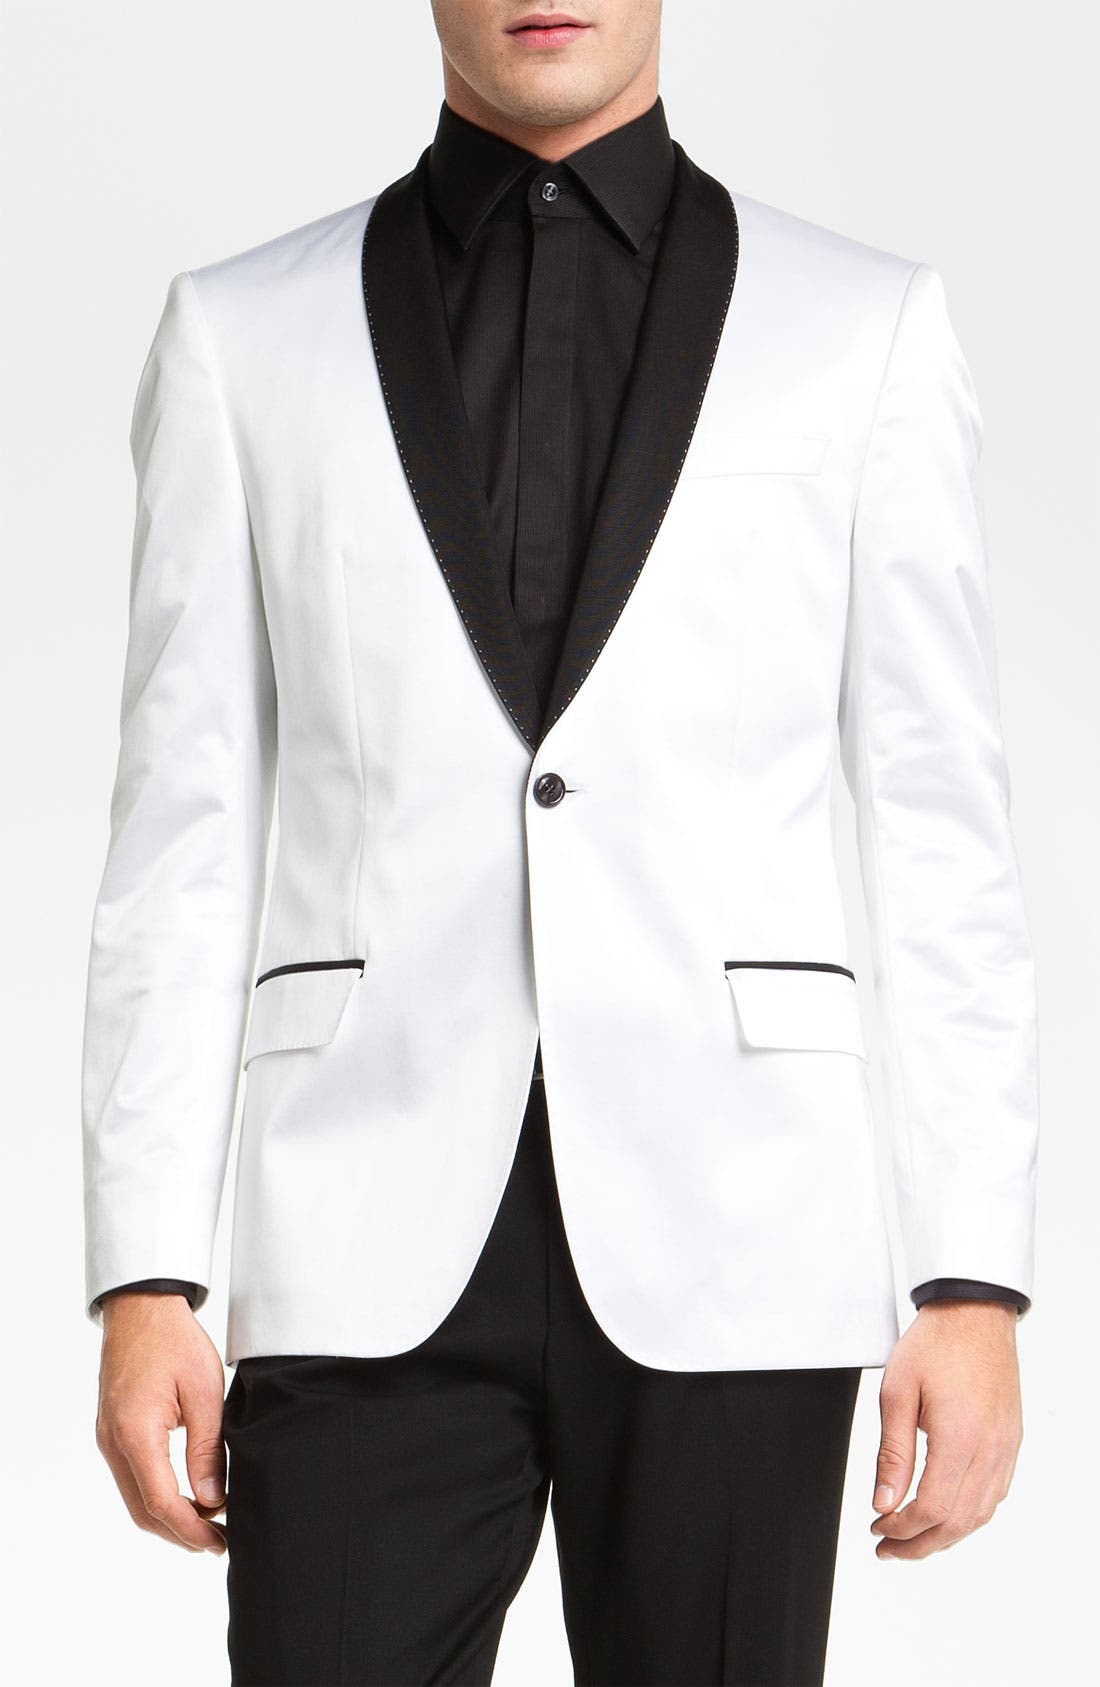 Main Image - BOSS Black 'Hyatt' Shawl Collar Dinner Jacket